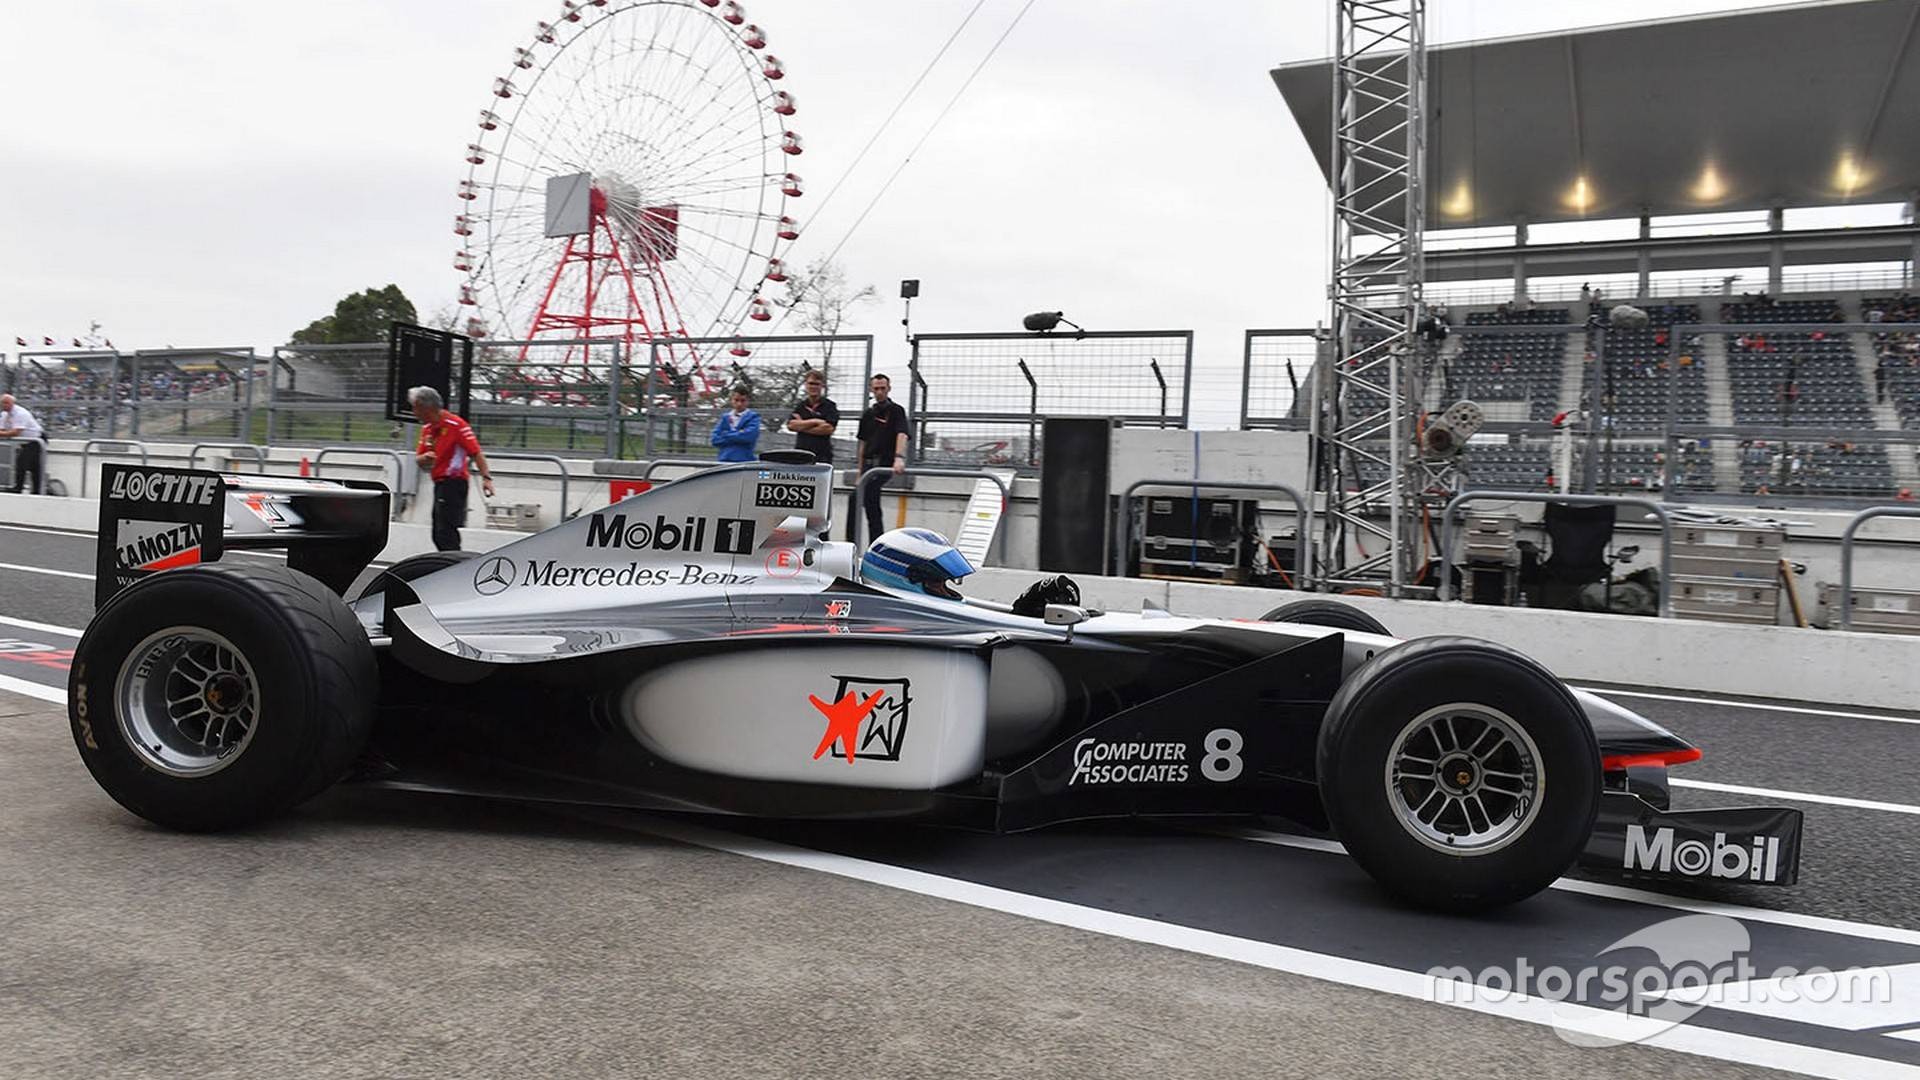 Mobil Libre Mika Hakkinen Drives Title Winning Mclaren At Suzuka